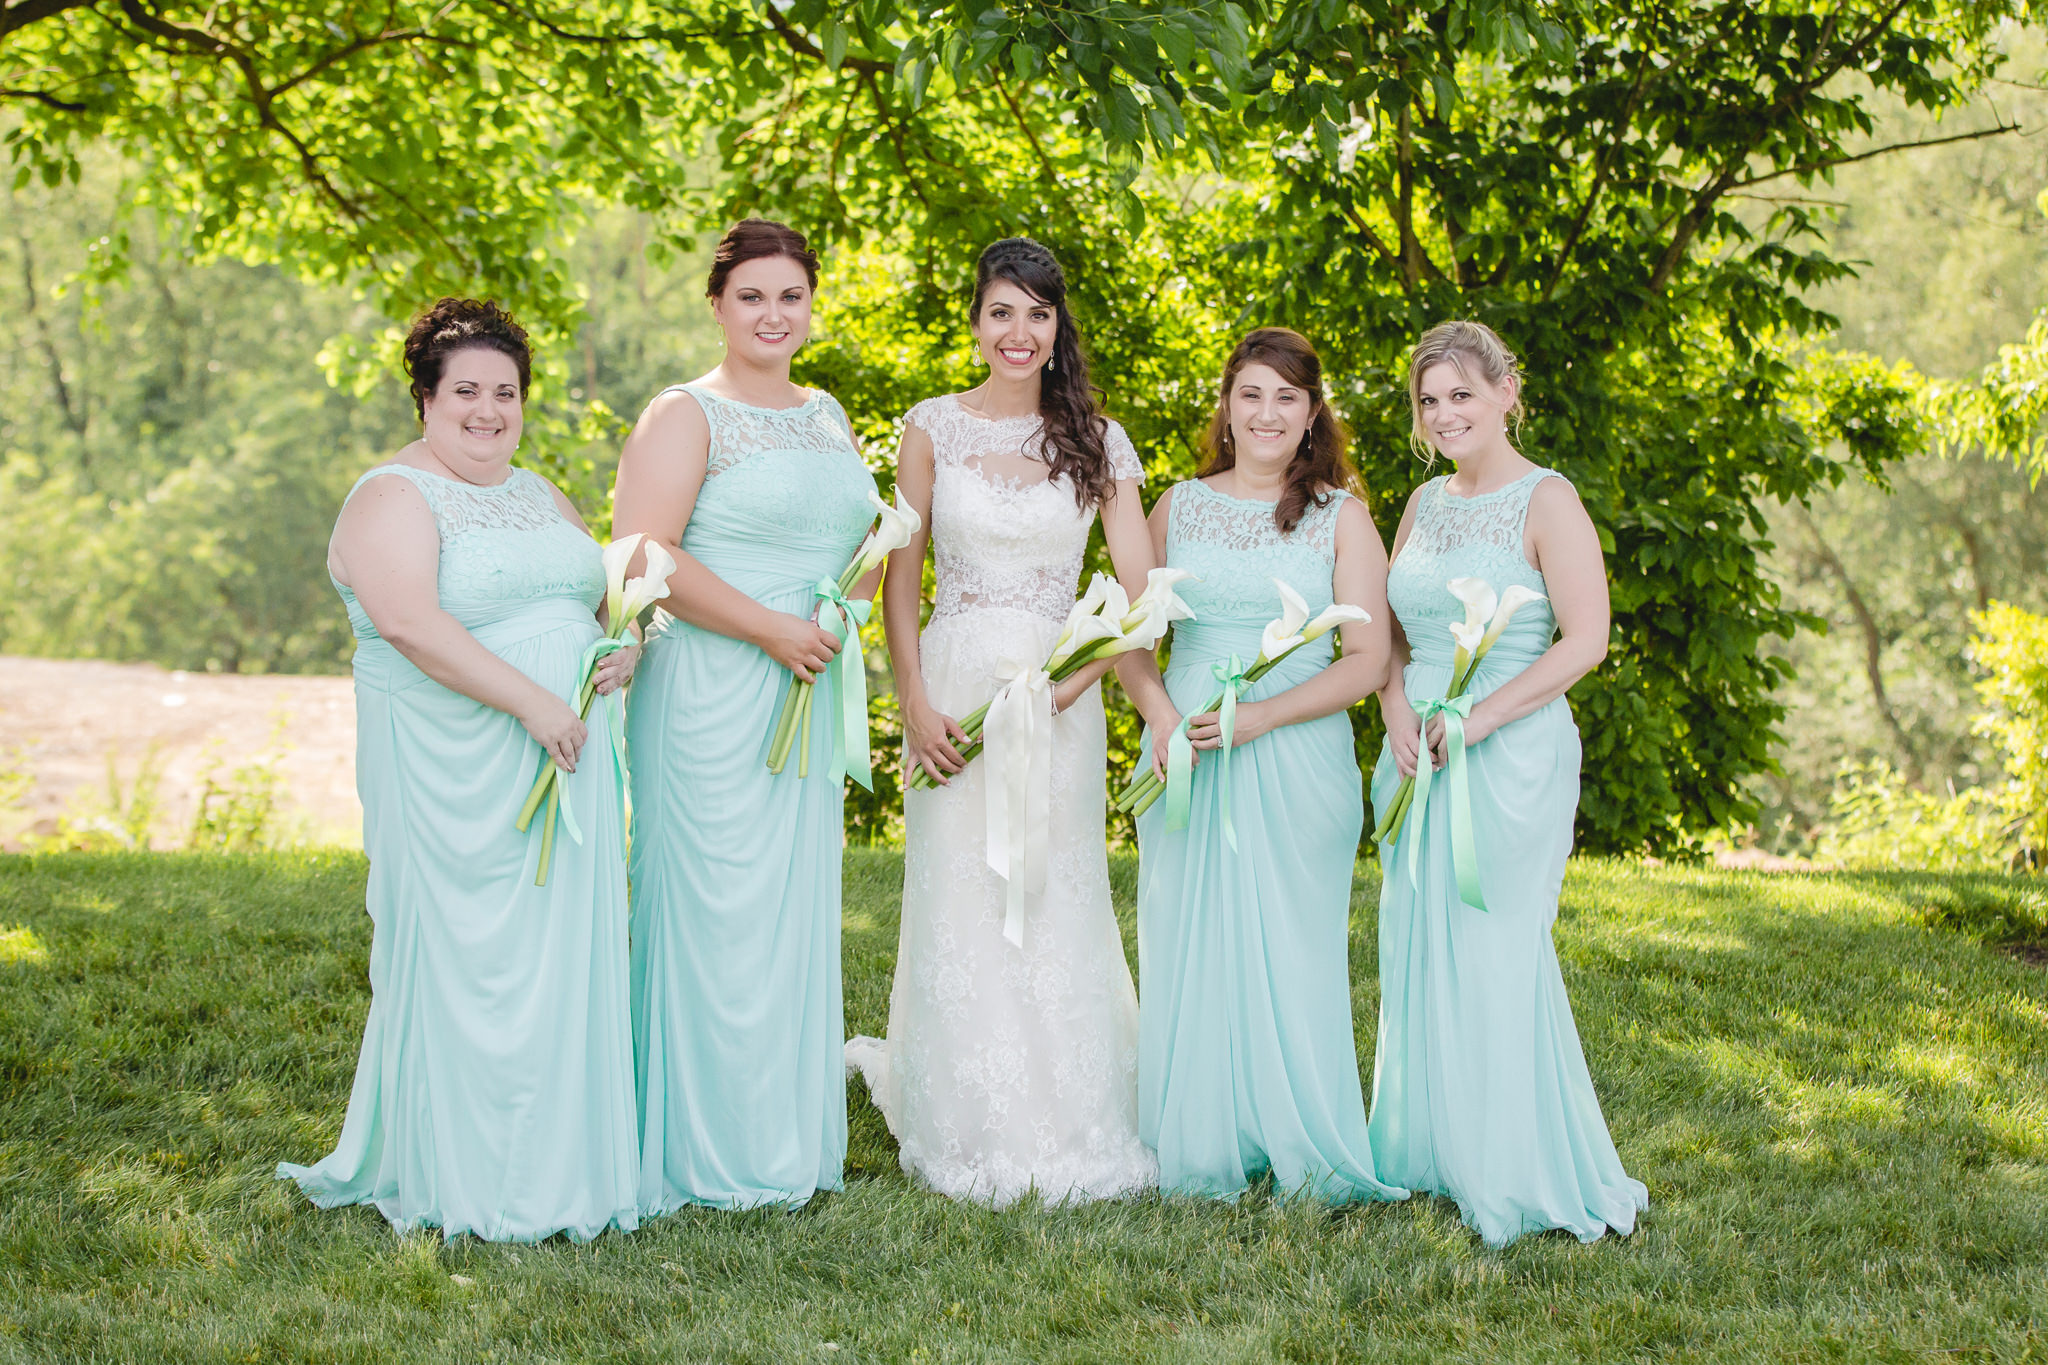 Bridesmaids in teal dresses holding calla lilies